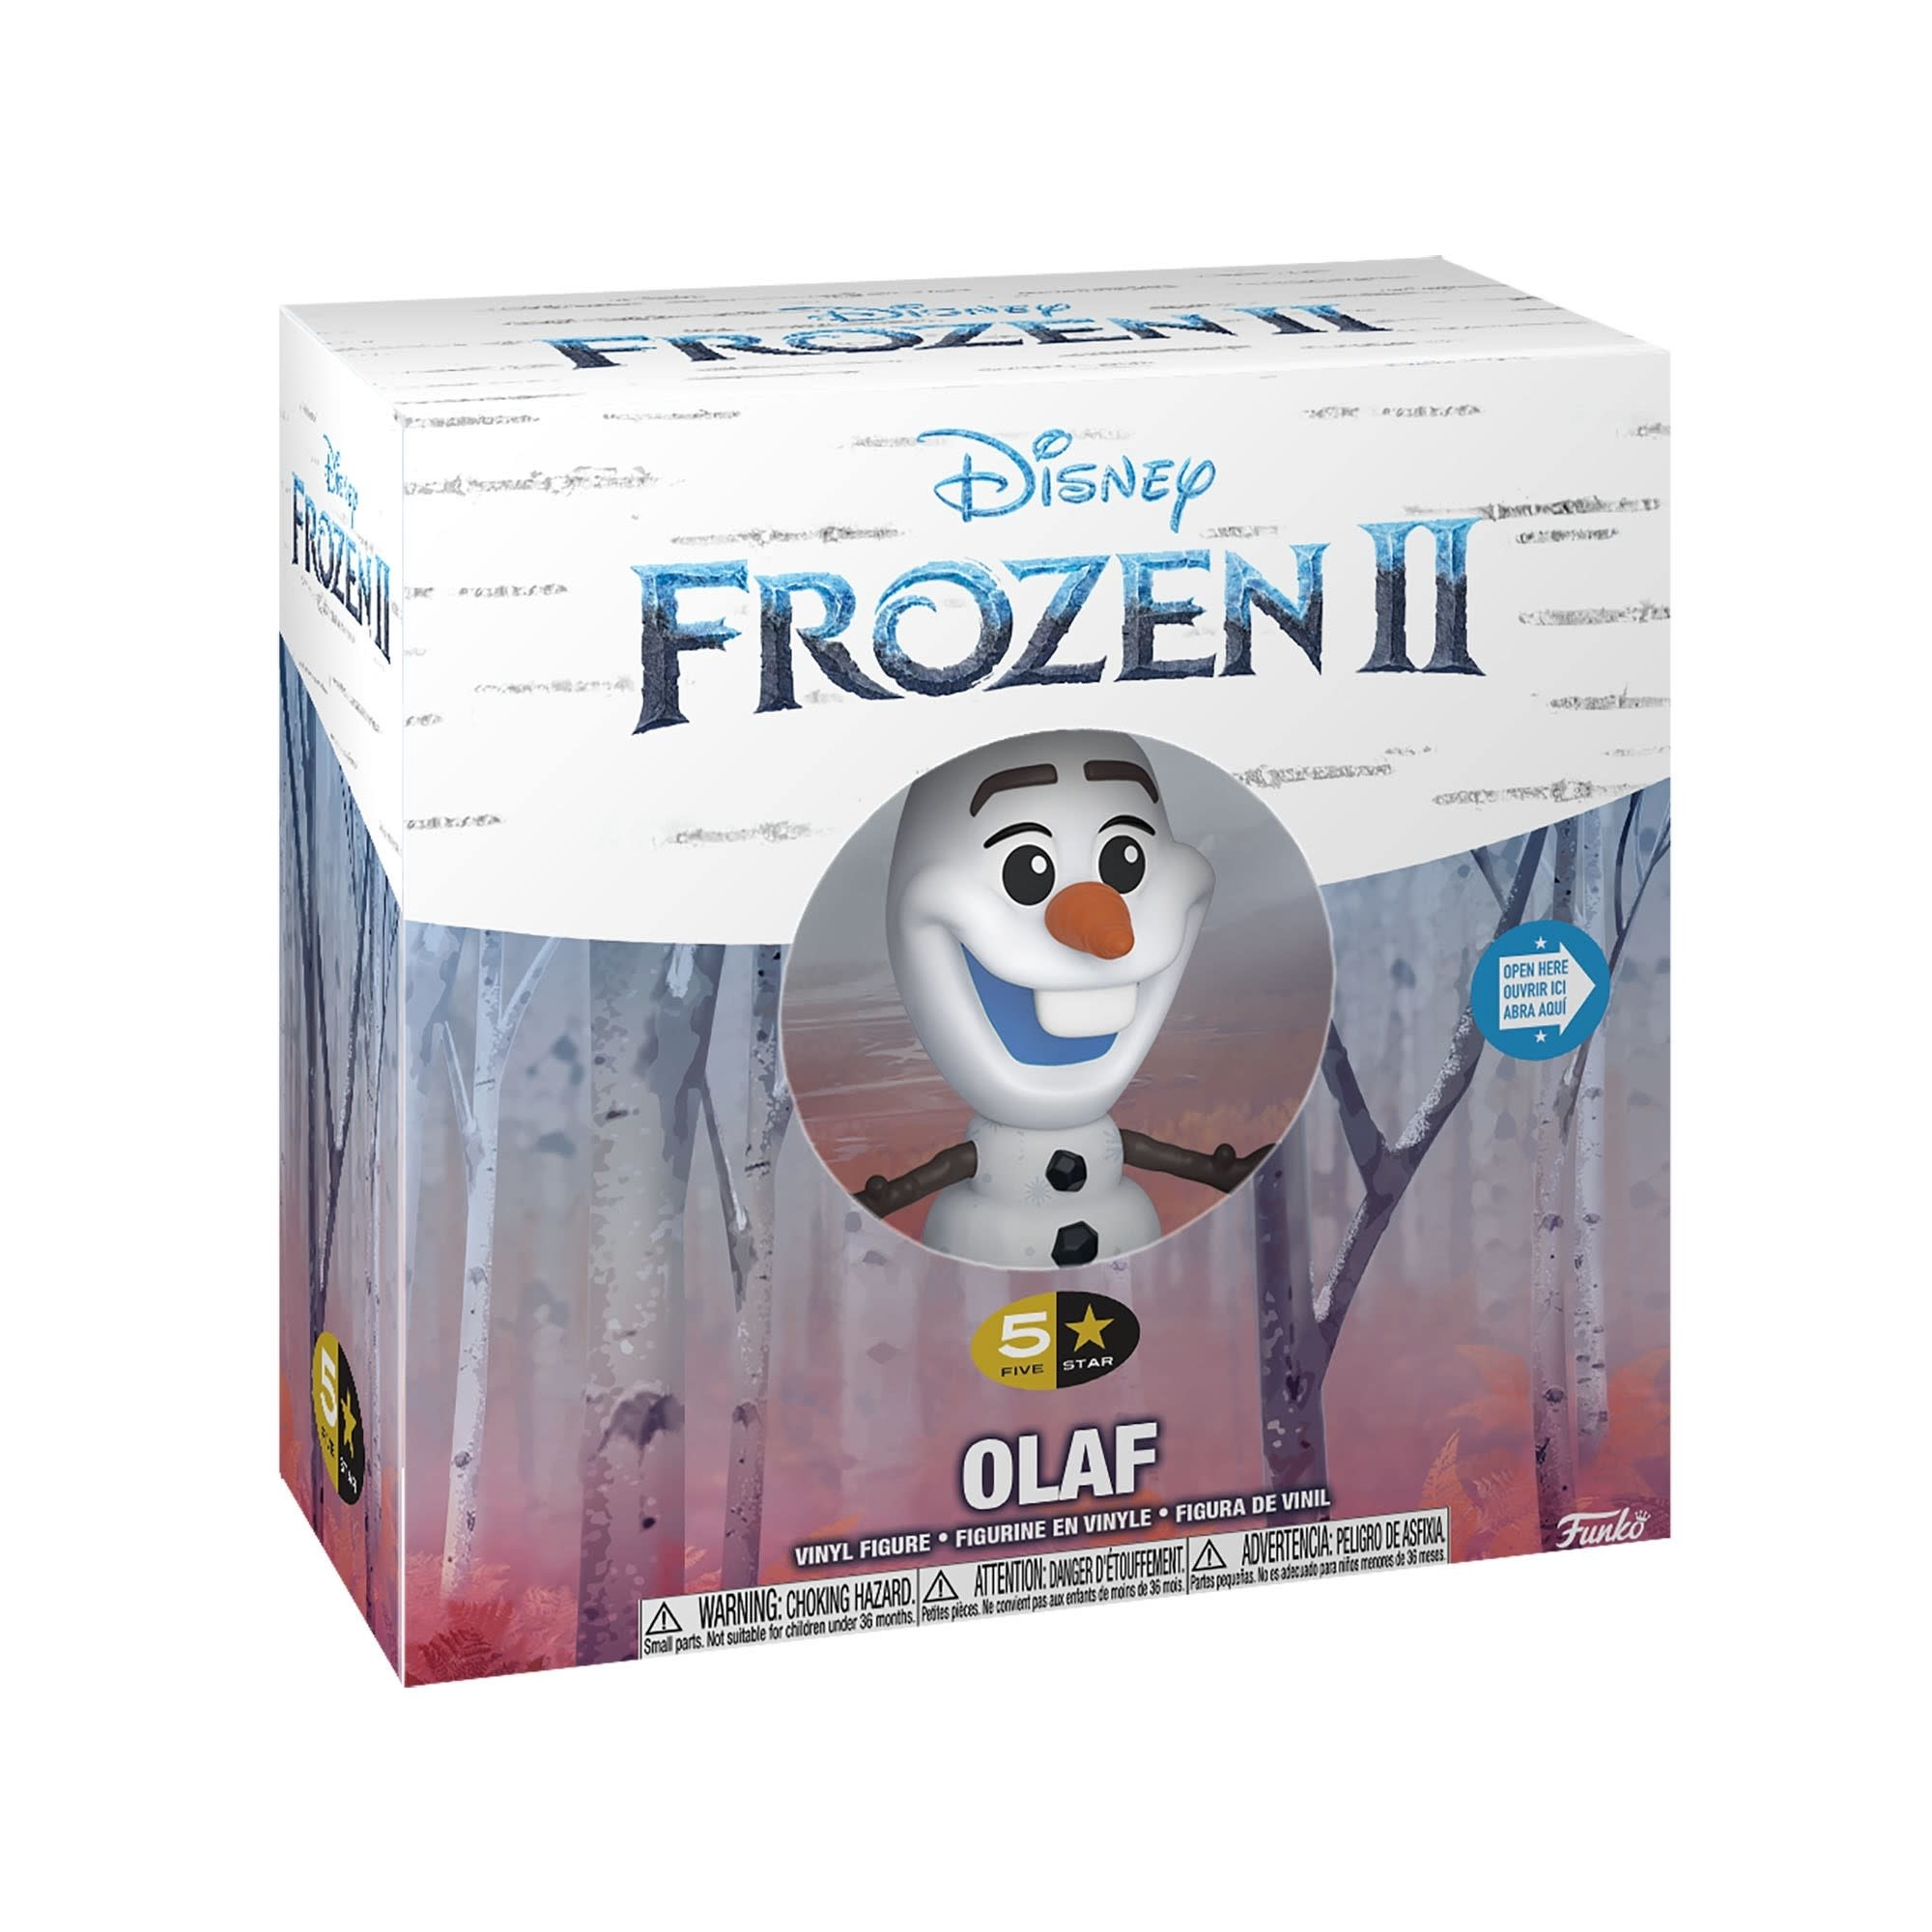 5 Star Disney Frozen 2 Olaf